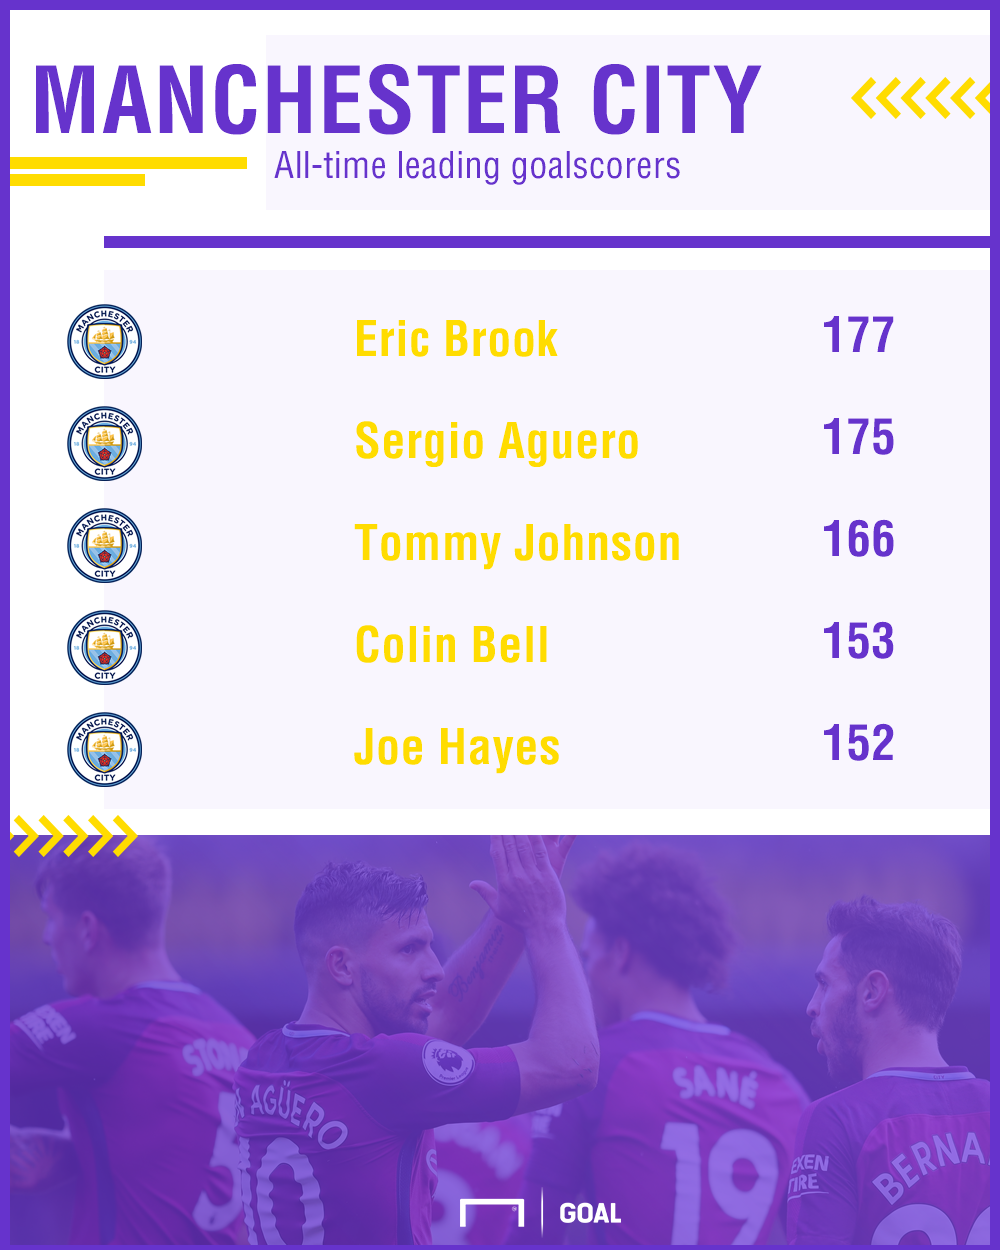 Manchester City all-time leading goalscorers